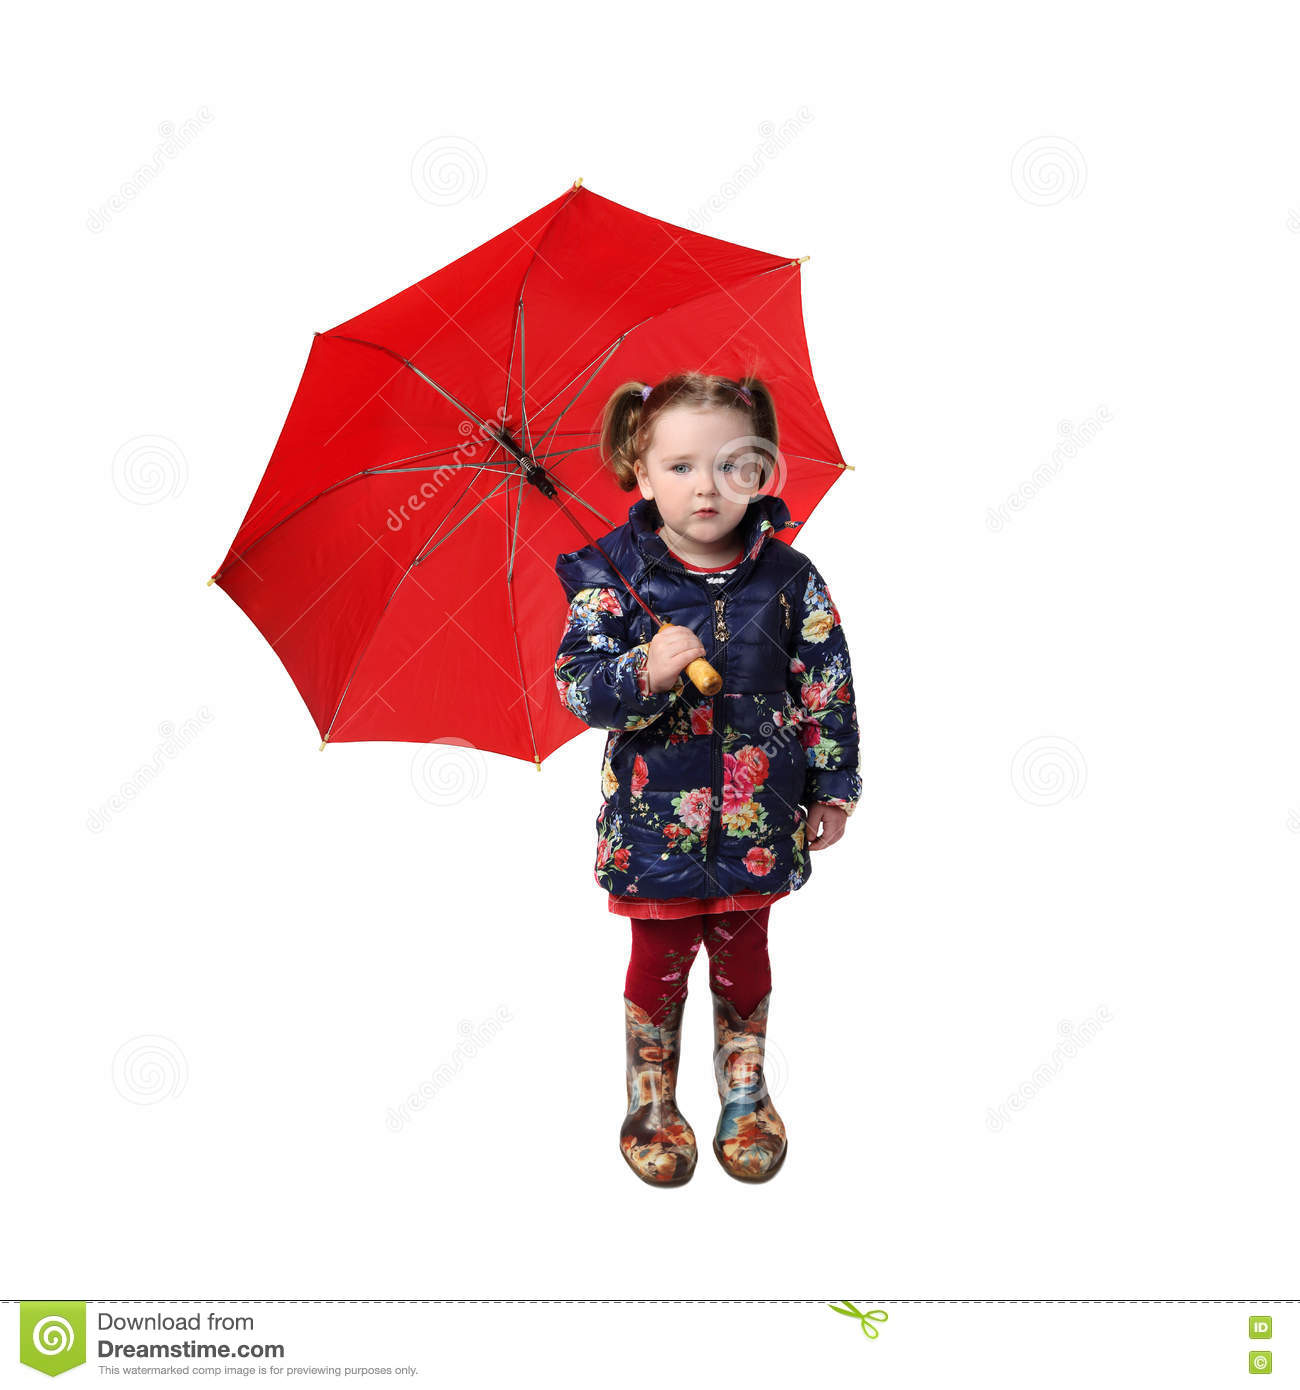 Little Girl With Red Umbrella Stock Photo - Image: 78719286